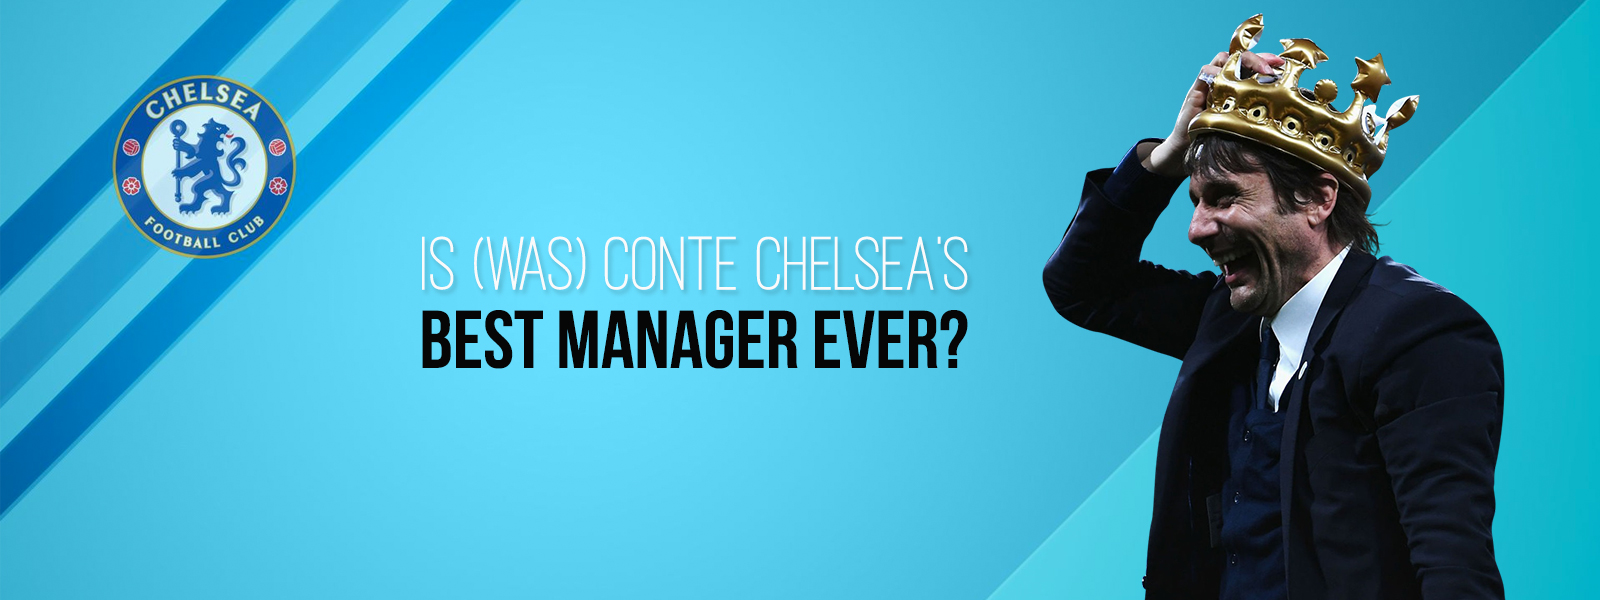 Is Antonio Conte Chelsea Best Manager Ever?